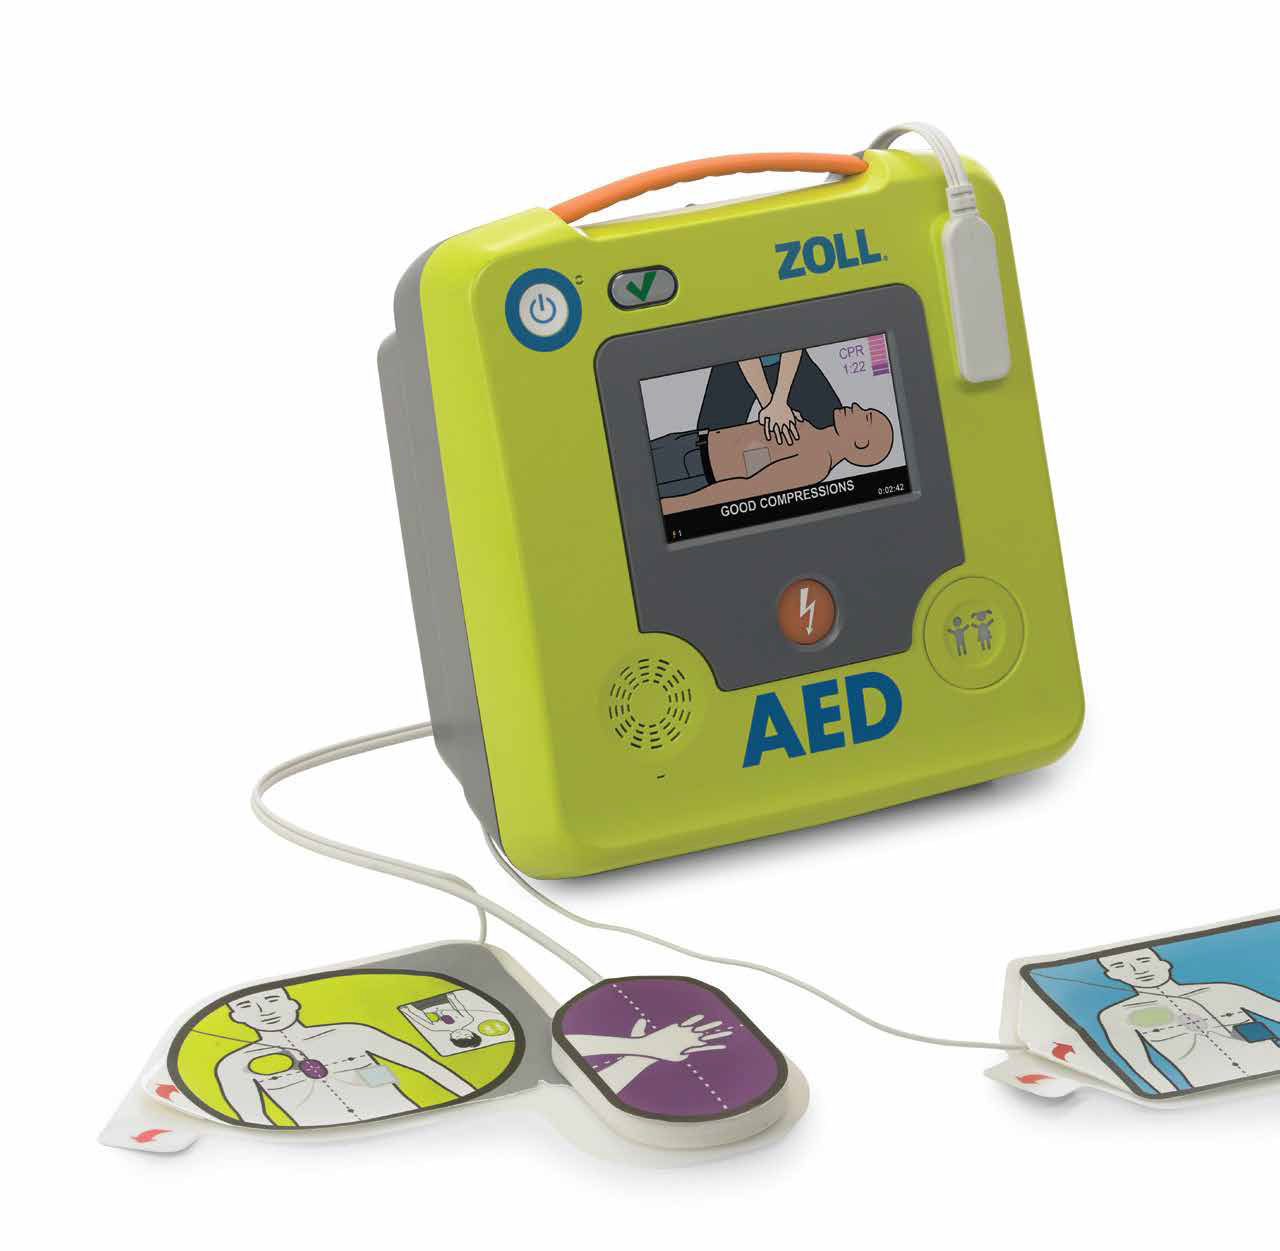 Zoll AED3 automated external defibulator with pads